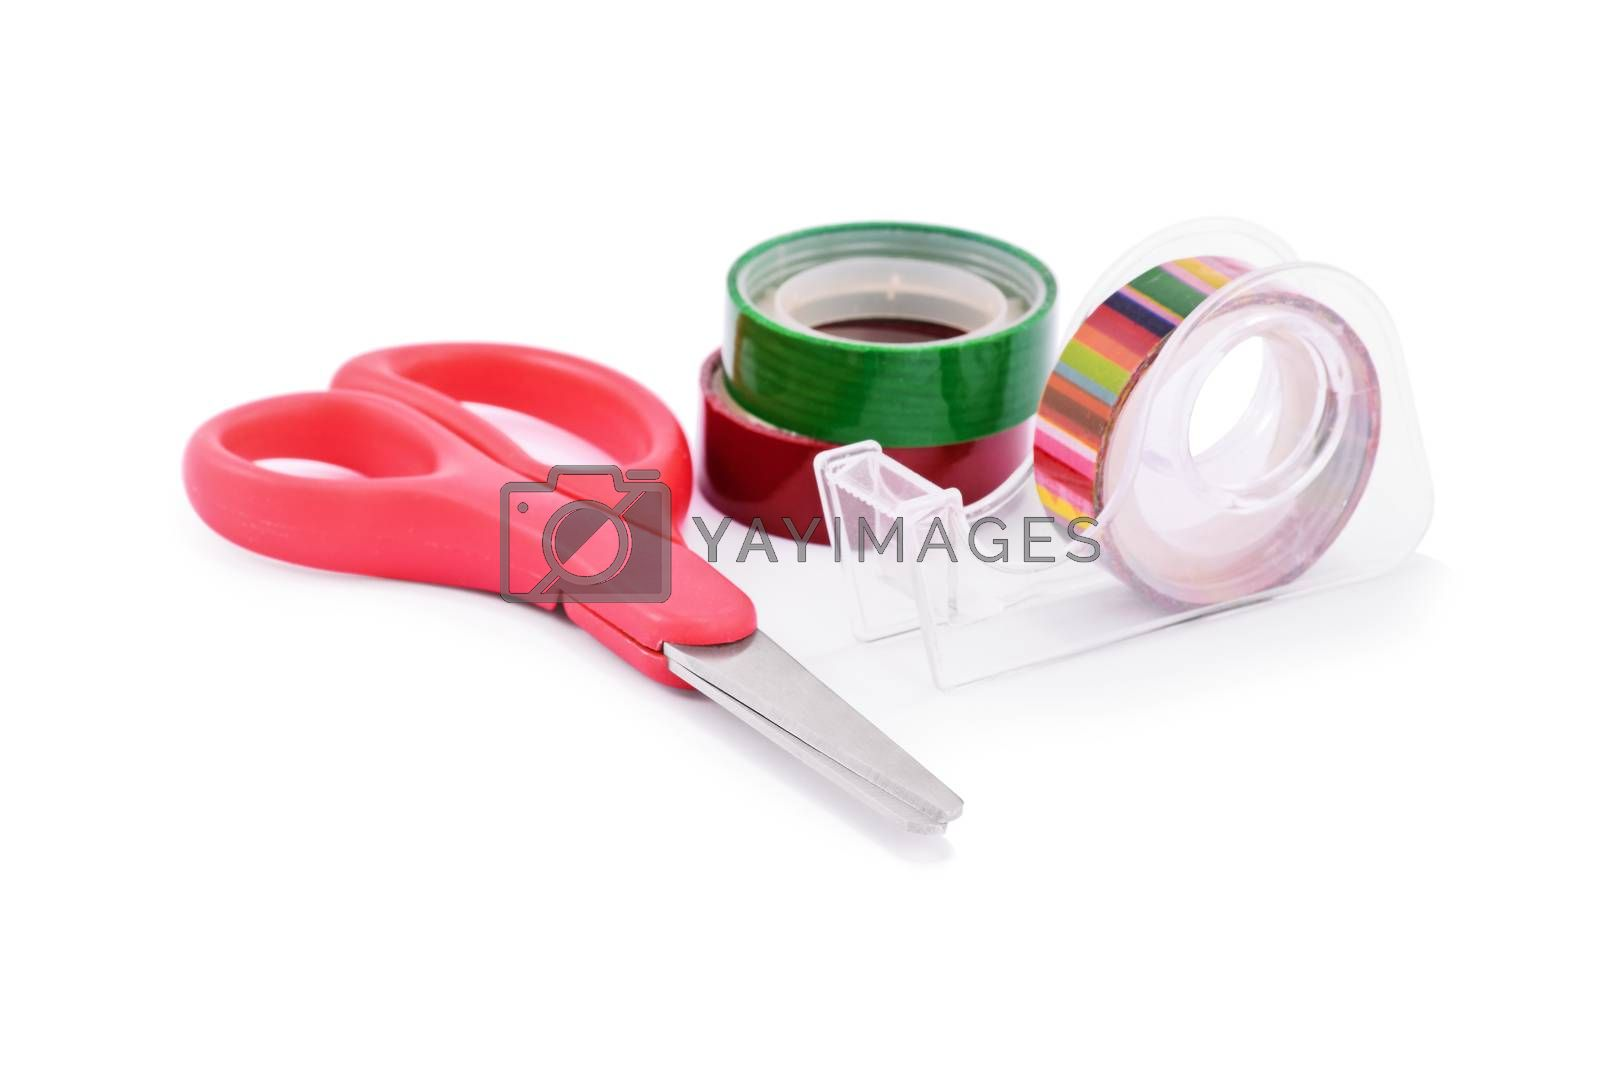 DIY gift wrapping concept. Close up of colorful washi tapes and red scissors, isolated on white background.